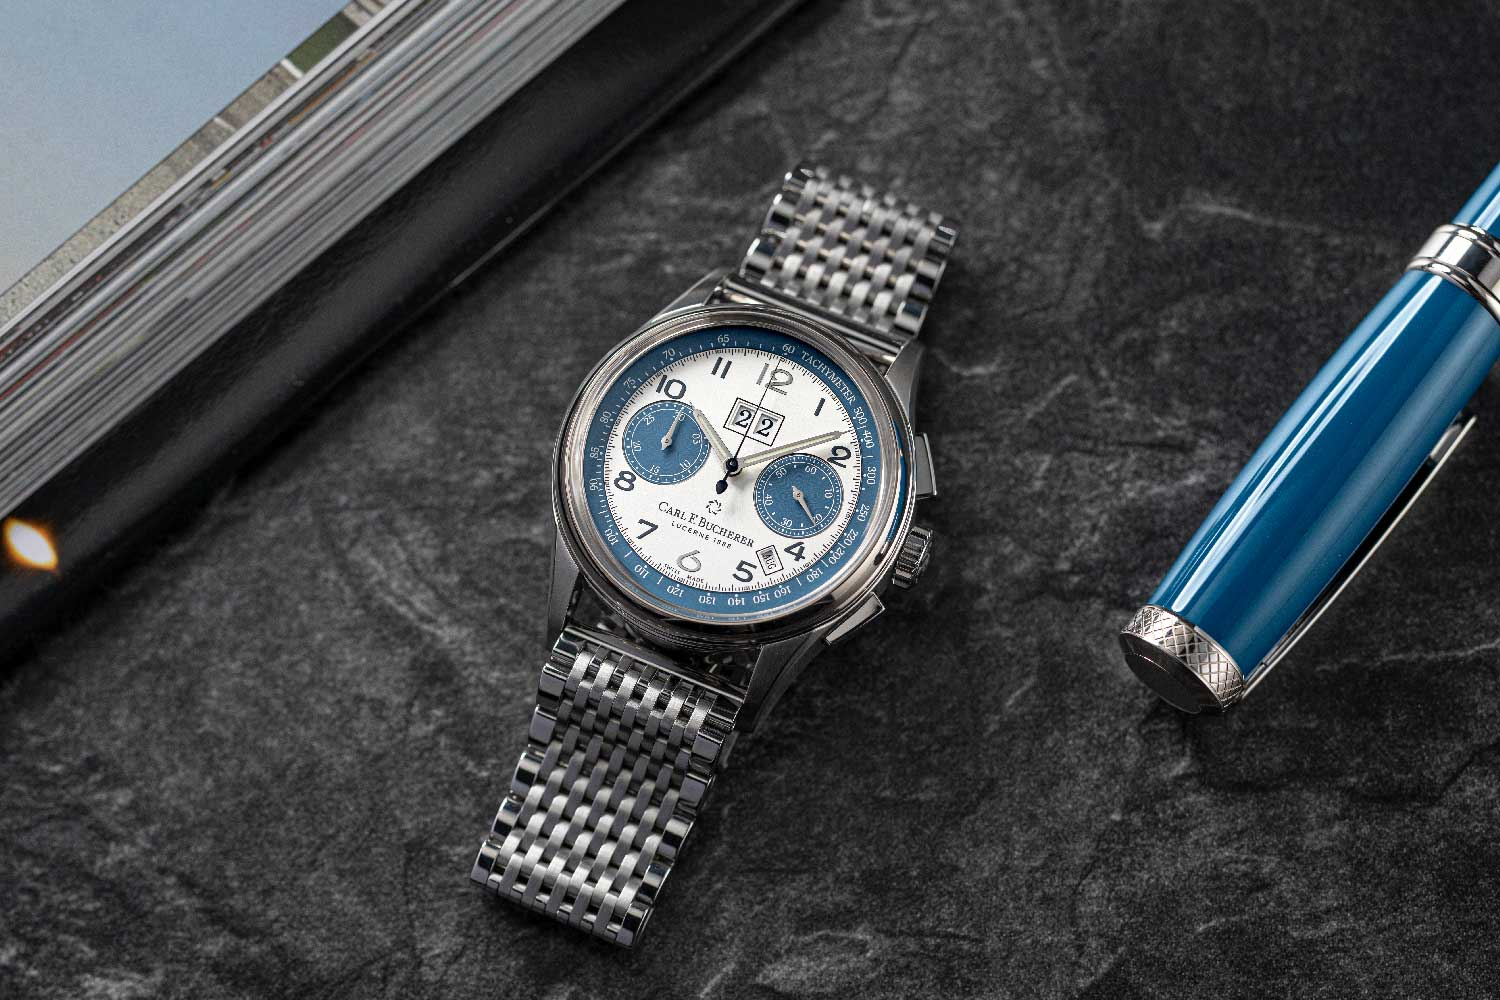 The Heritage BiCompax Annual Lucerne pays homage to Jörg G. Bucherer's passion for the family car that returned to his life after so many years, and, of course, to his hometown of Lucerne. (© Revolution)